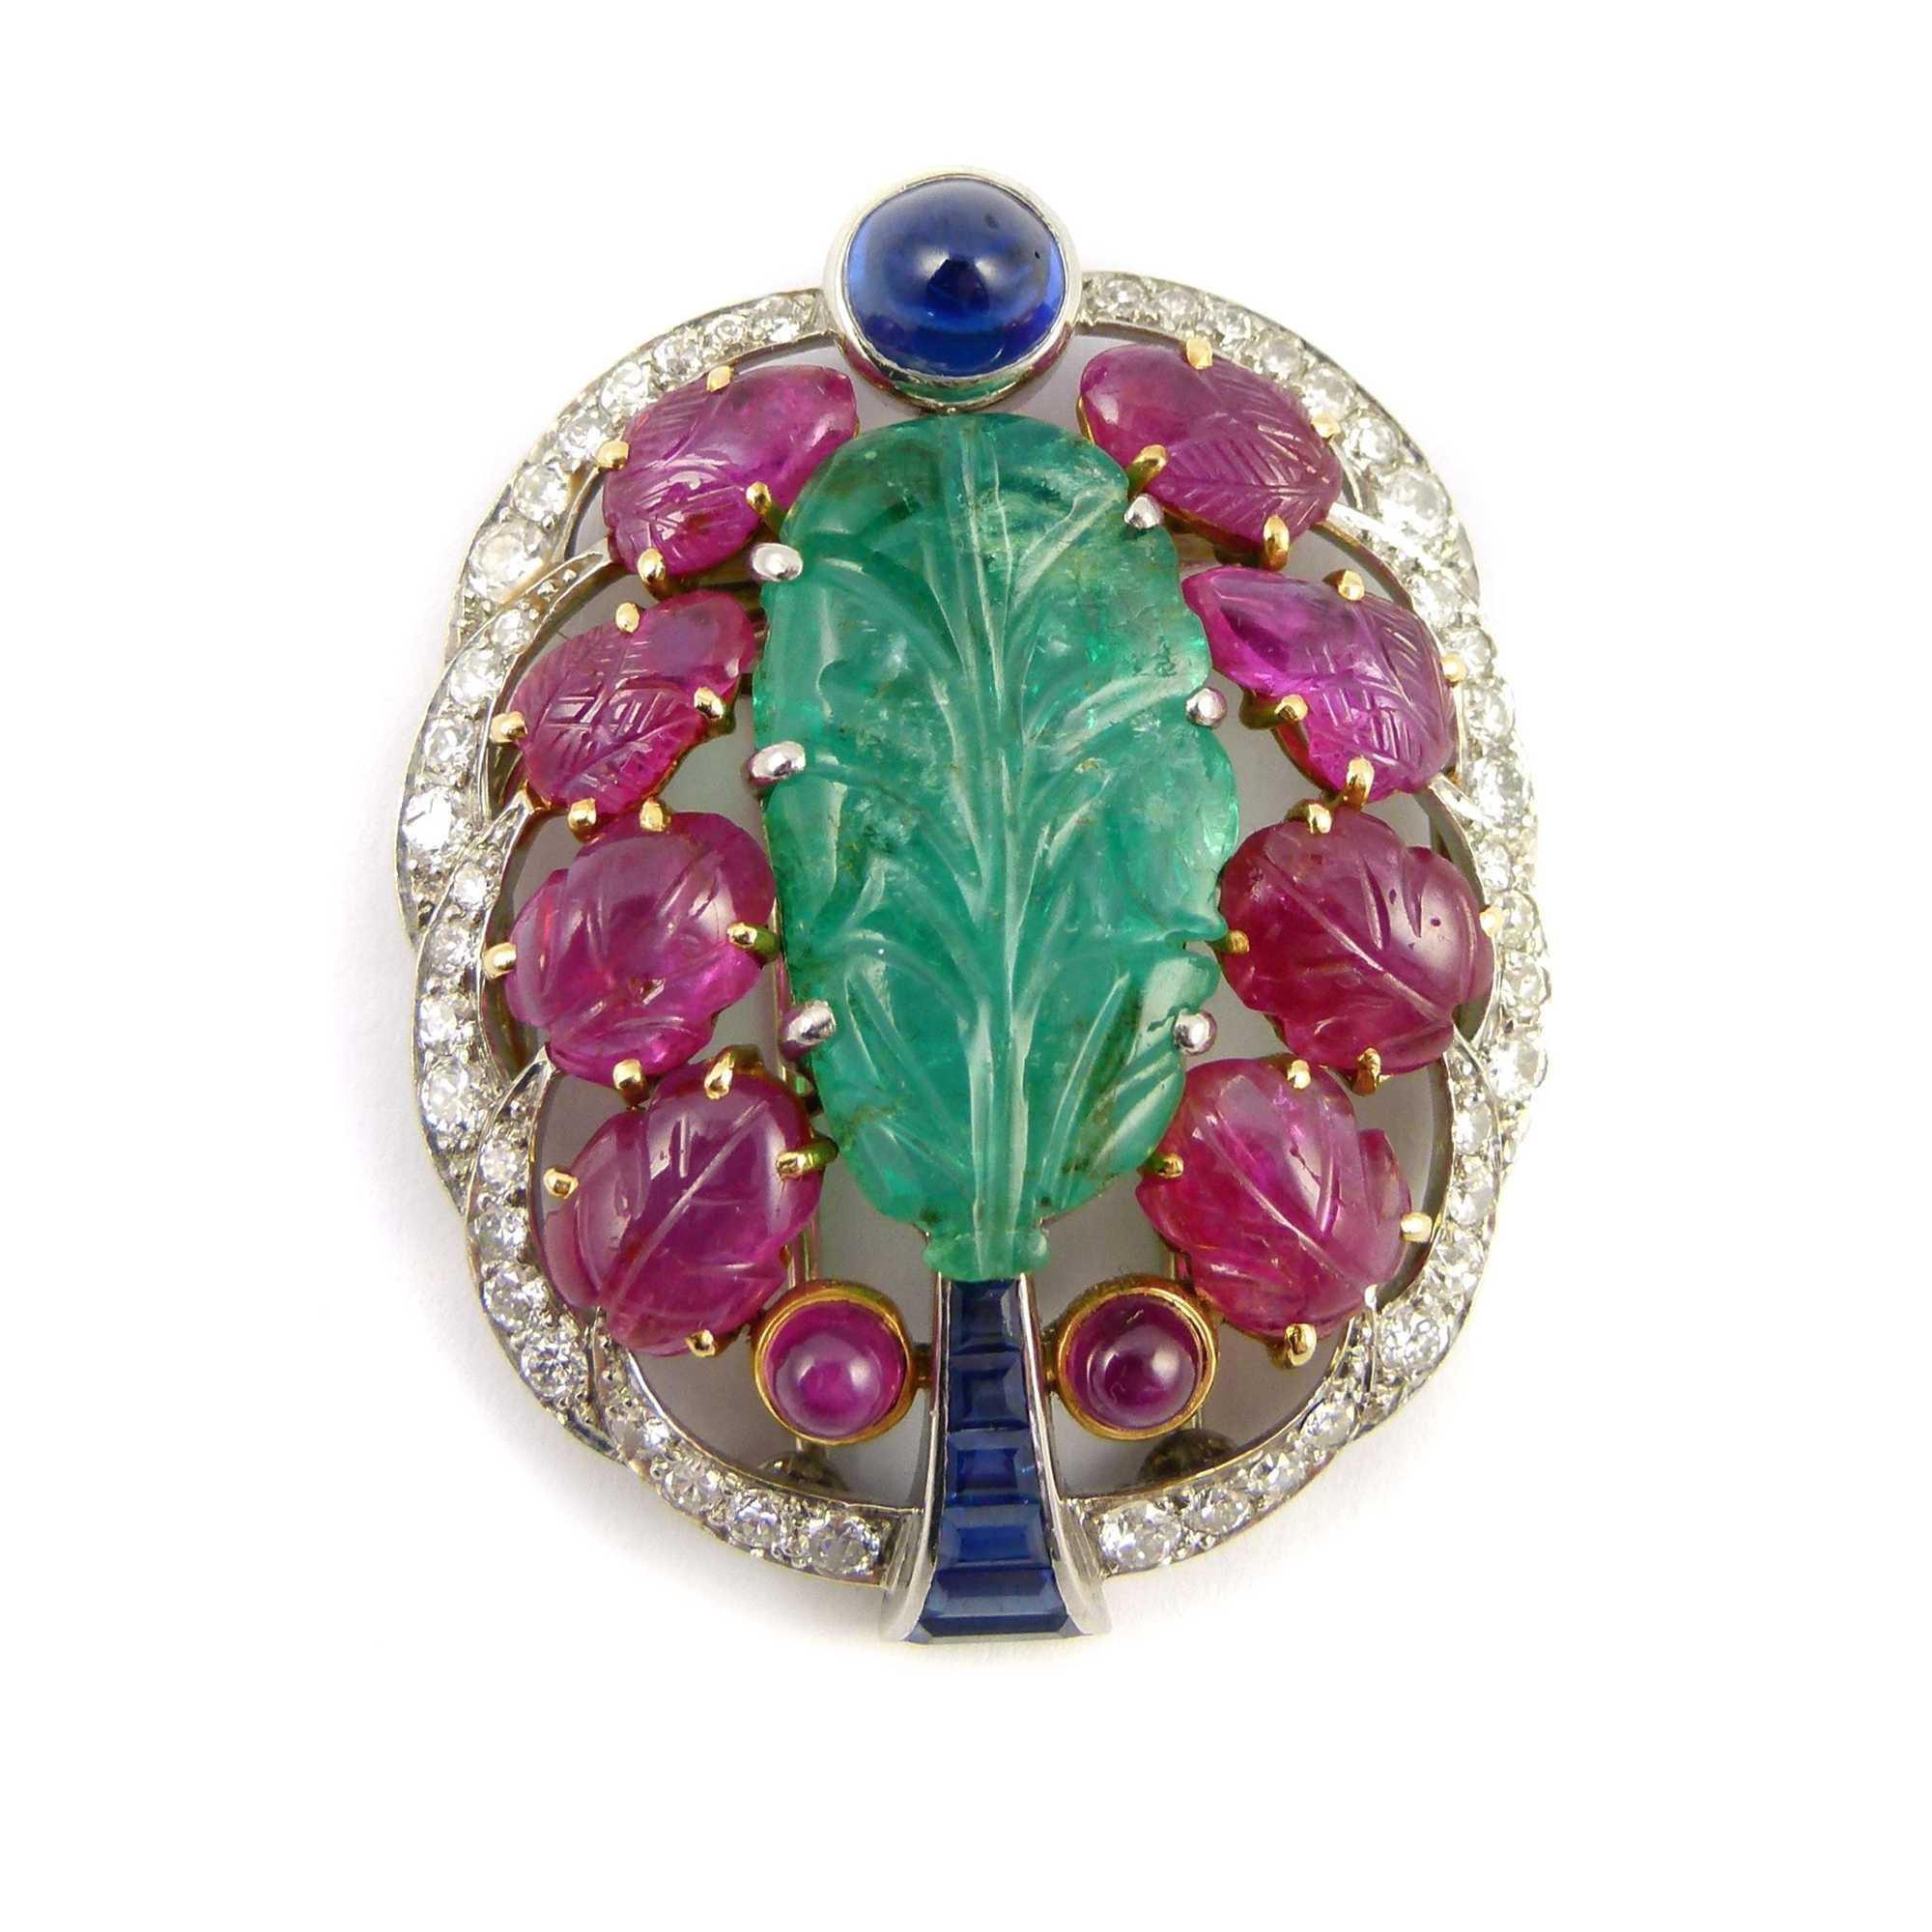 Art Deco carved emerald, ruby, sapphire and diamond brooch, French c.1925, workshop mark for Georges Lenfant who was a maker for Cartier